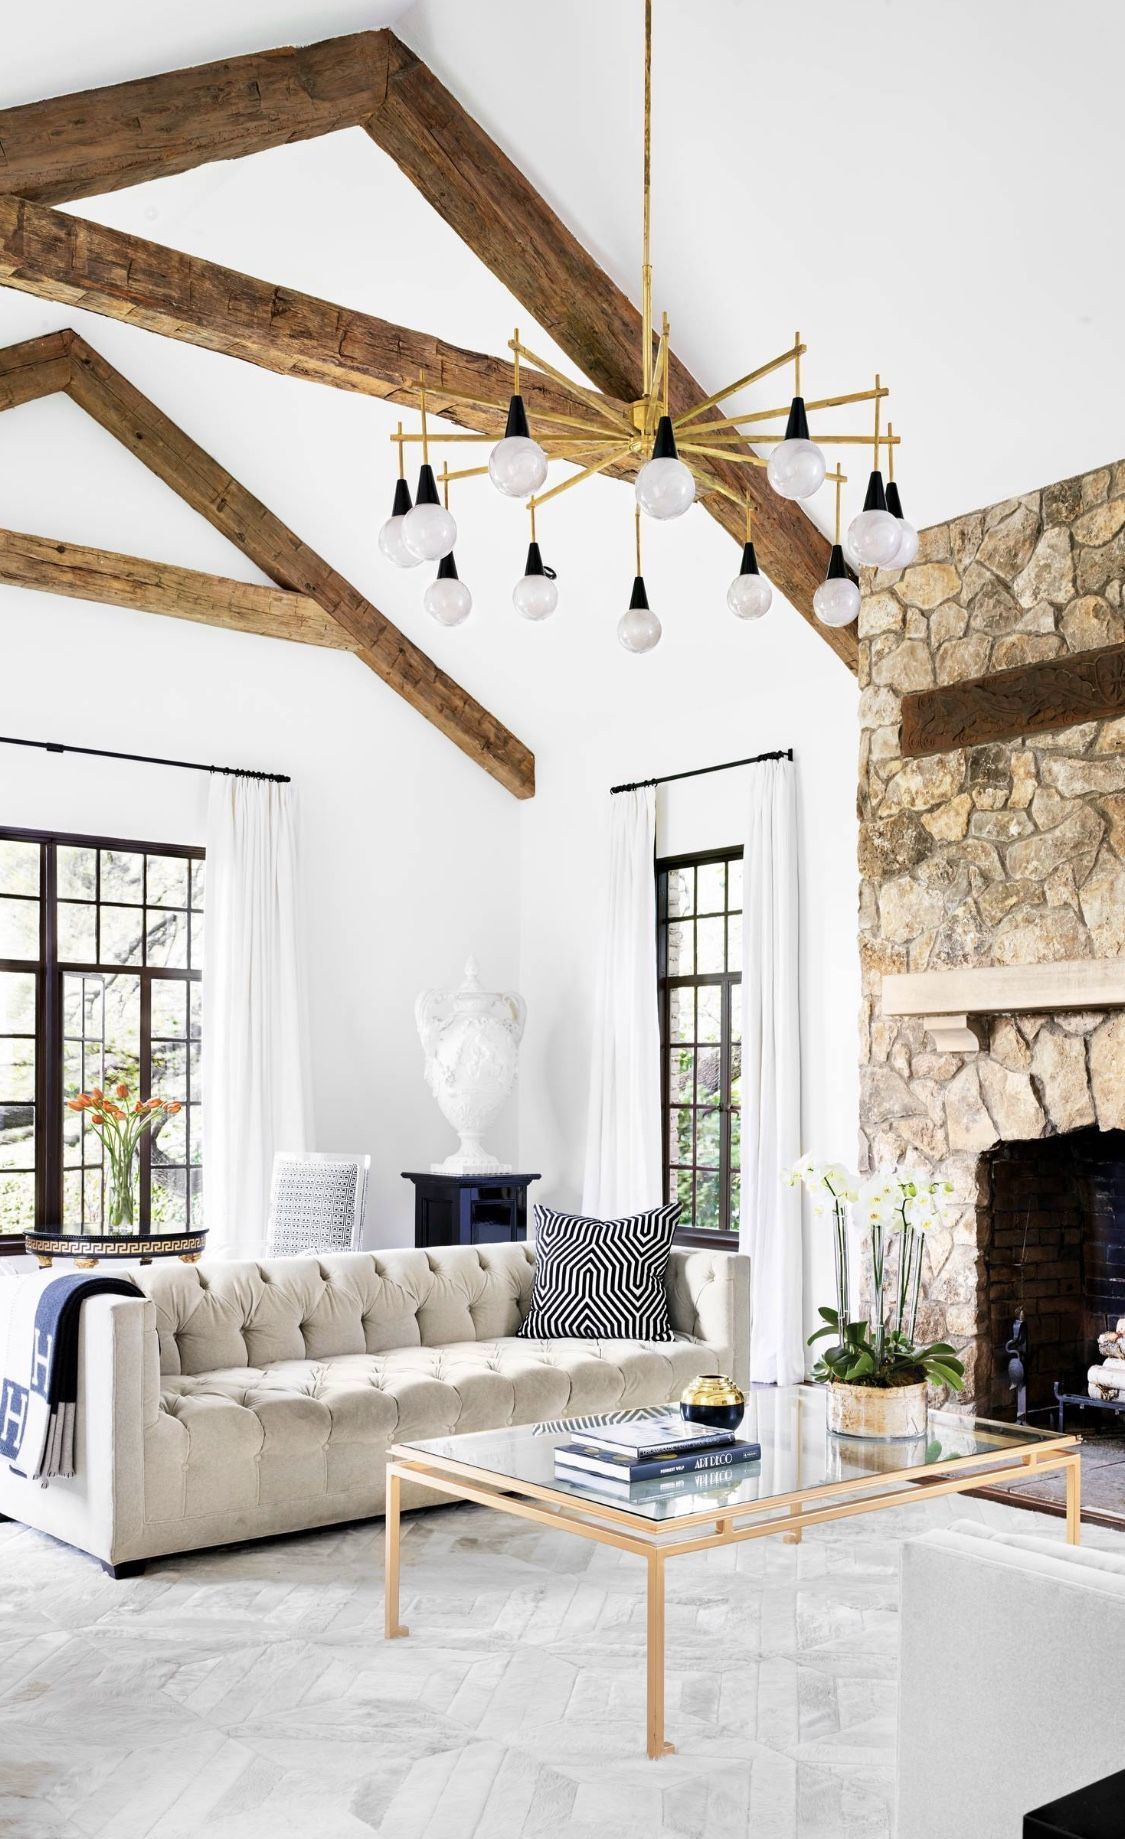 mediterranean farmhouse style on home remodel joanna gaines beautiful mediterranean style grey and beige farmhouse style living room decor country style living room farmhouse style living room pinterest